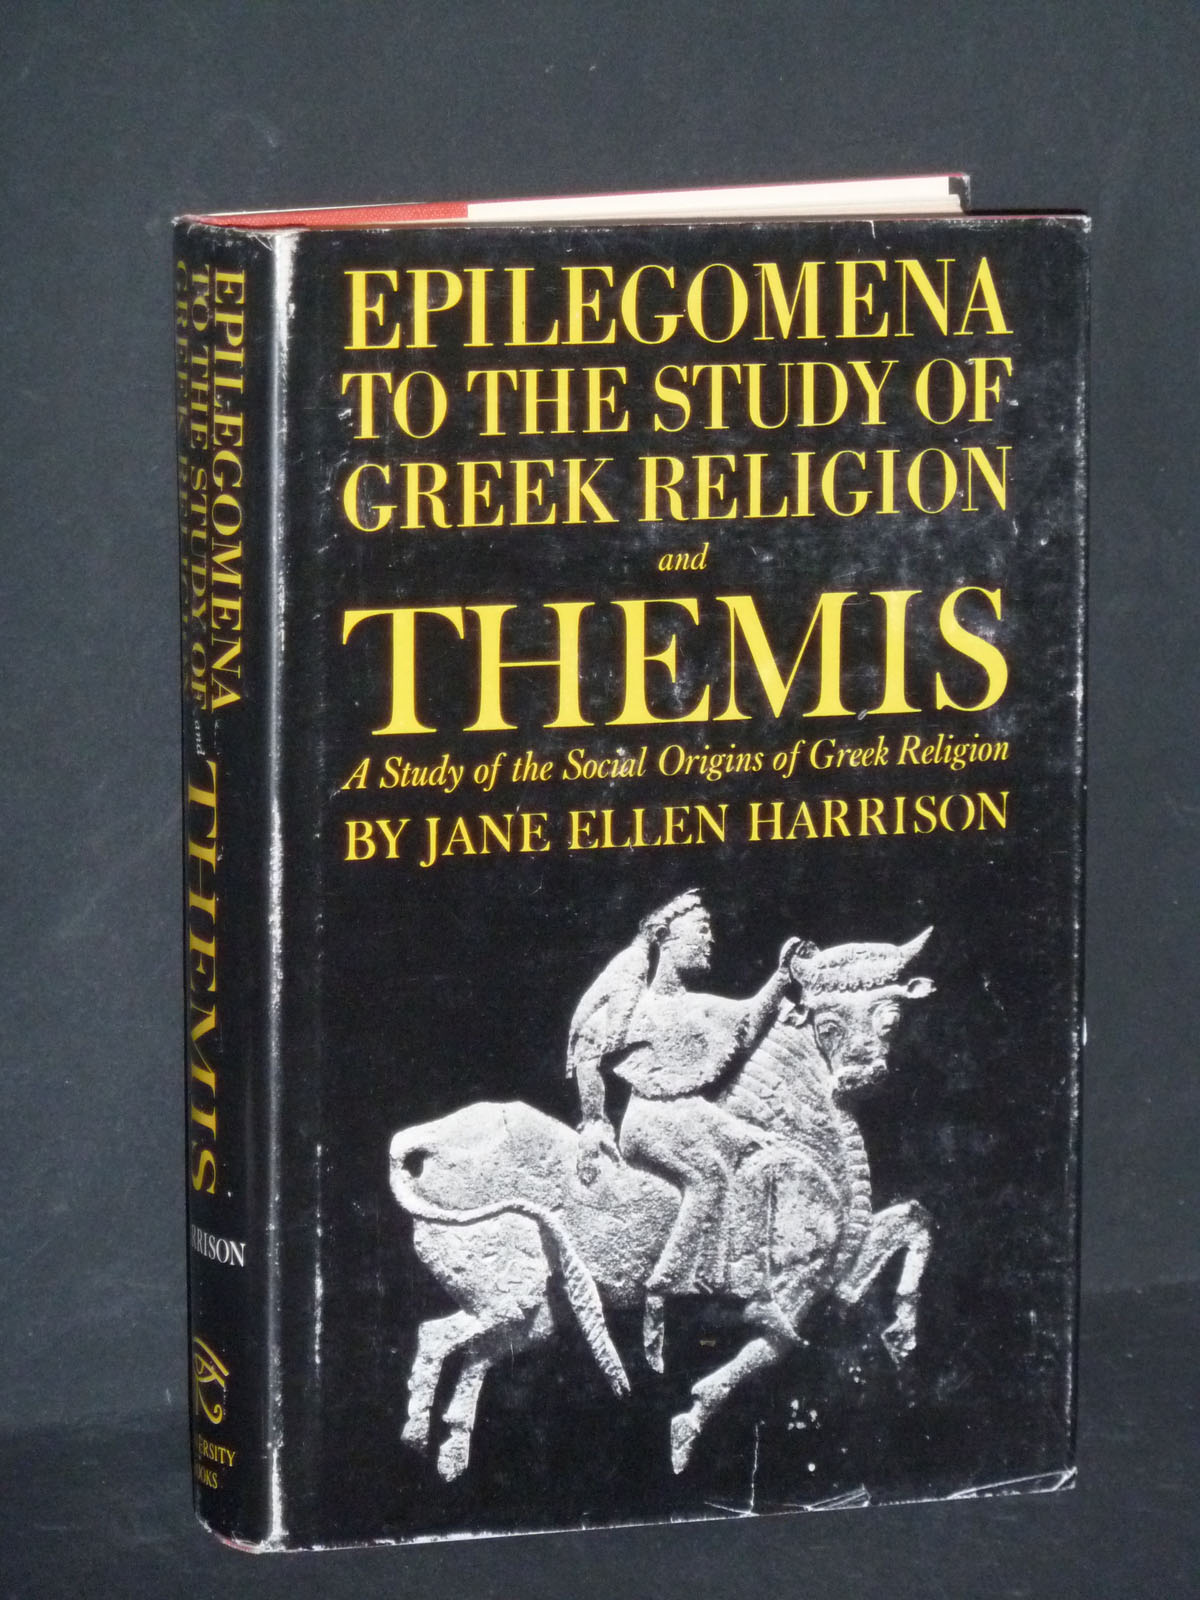 Image for Epilegomena To The Study Of Greek Religion and Themis / A Study of the Social Origins of Greek Religion